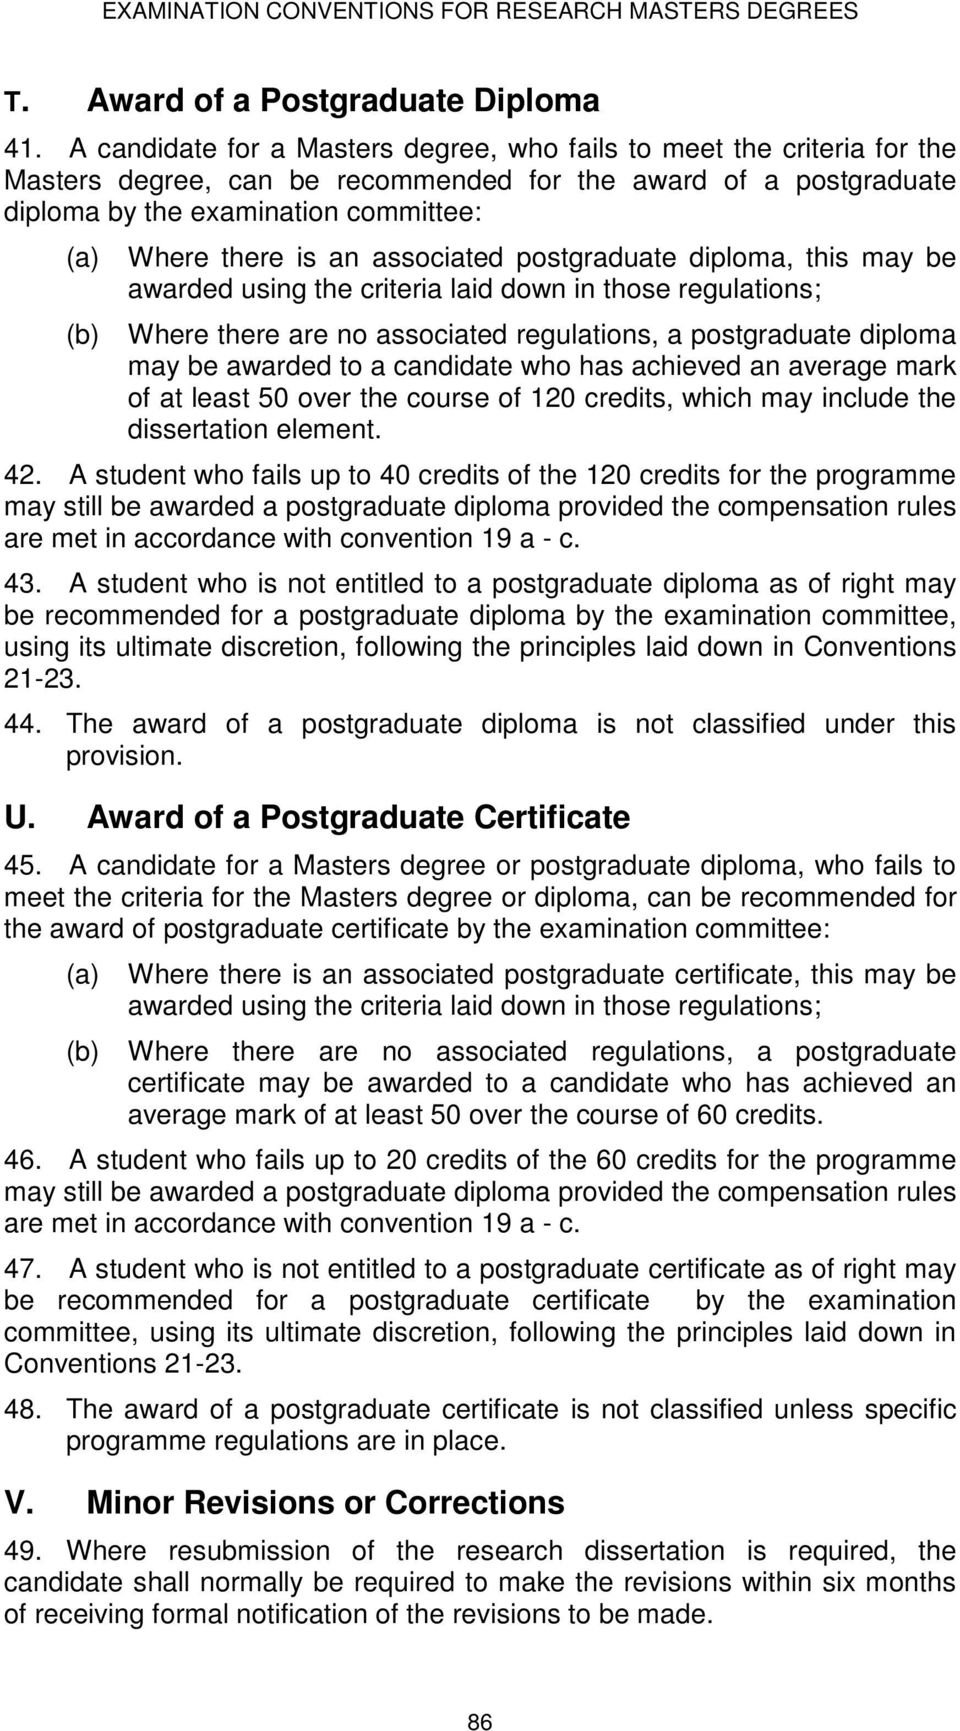 associated postgraduate diploma, this may be awarded using the criteria laid down in those regulations; Where there are no associated regulations, a postgraduate diploma may be awarded to a candidate